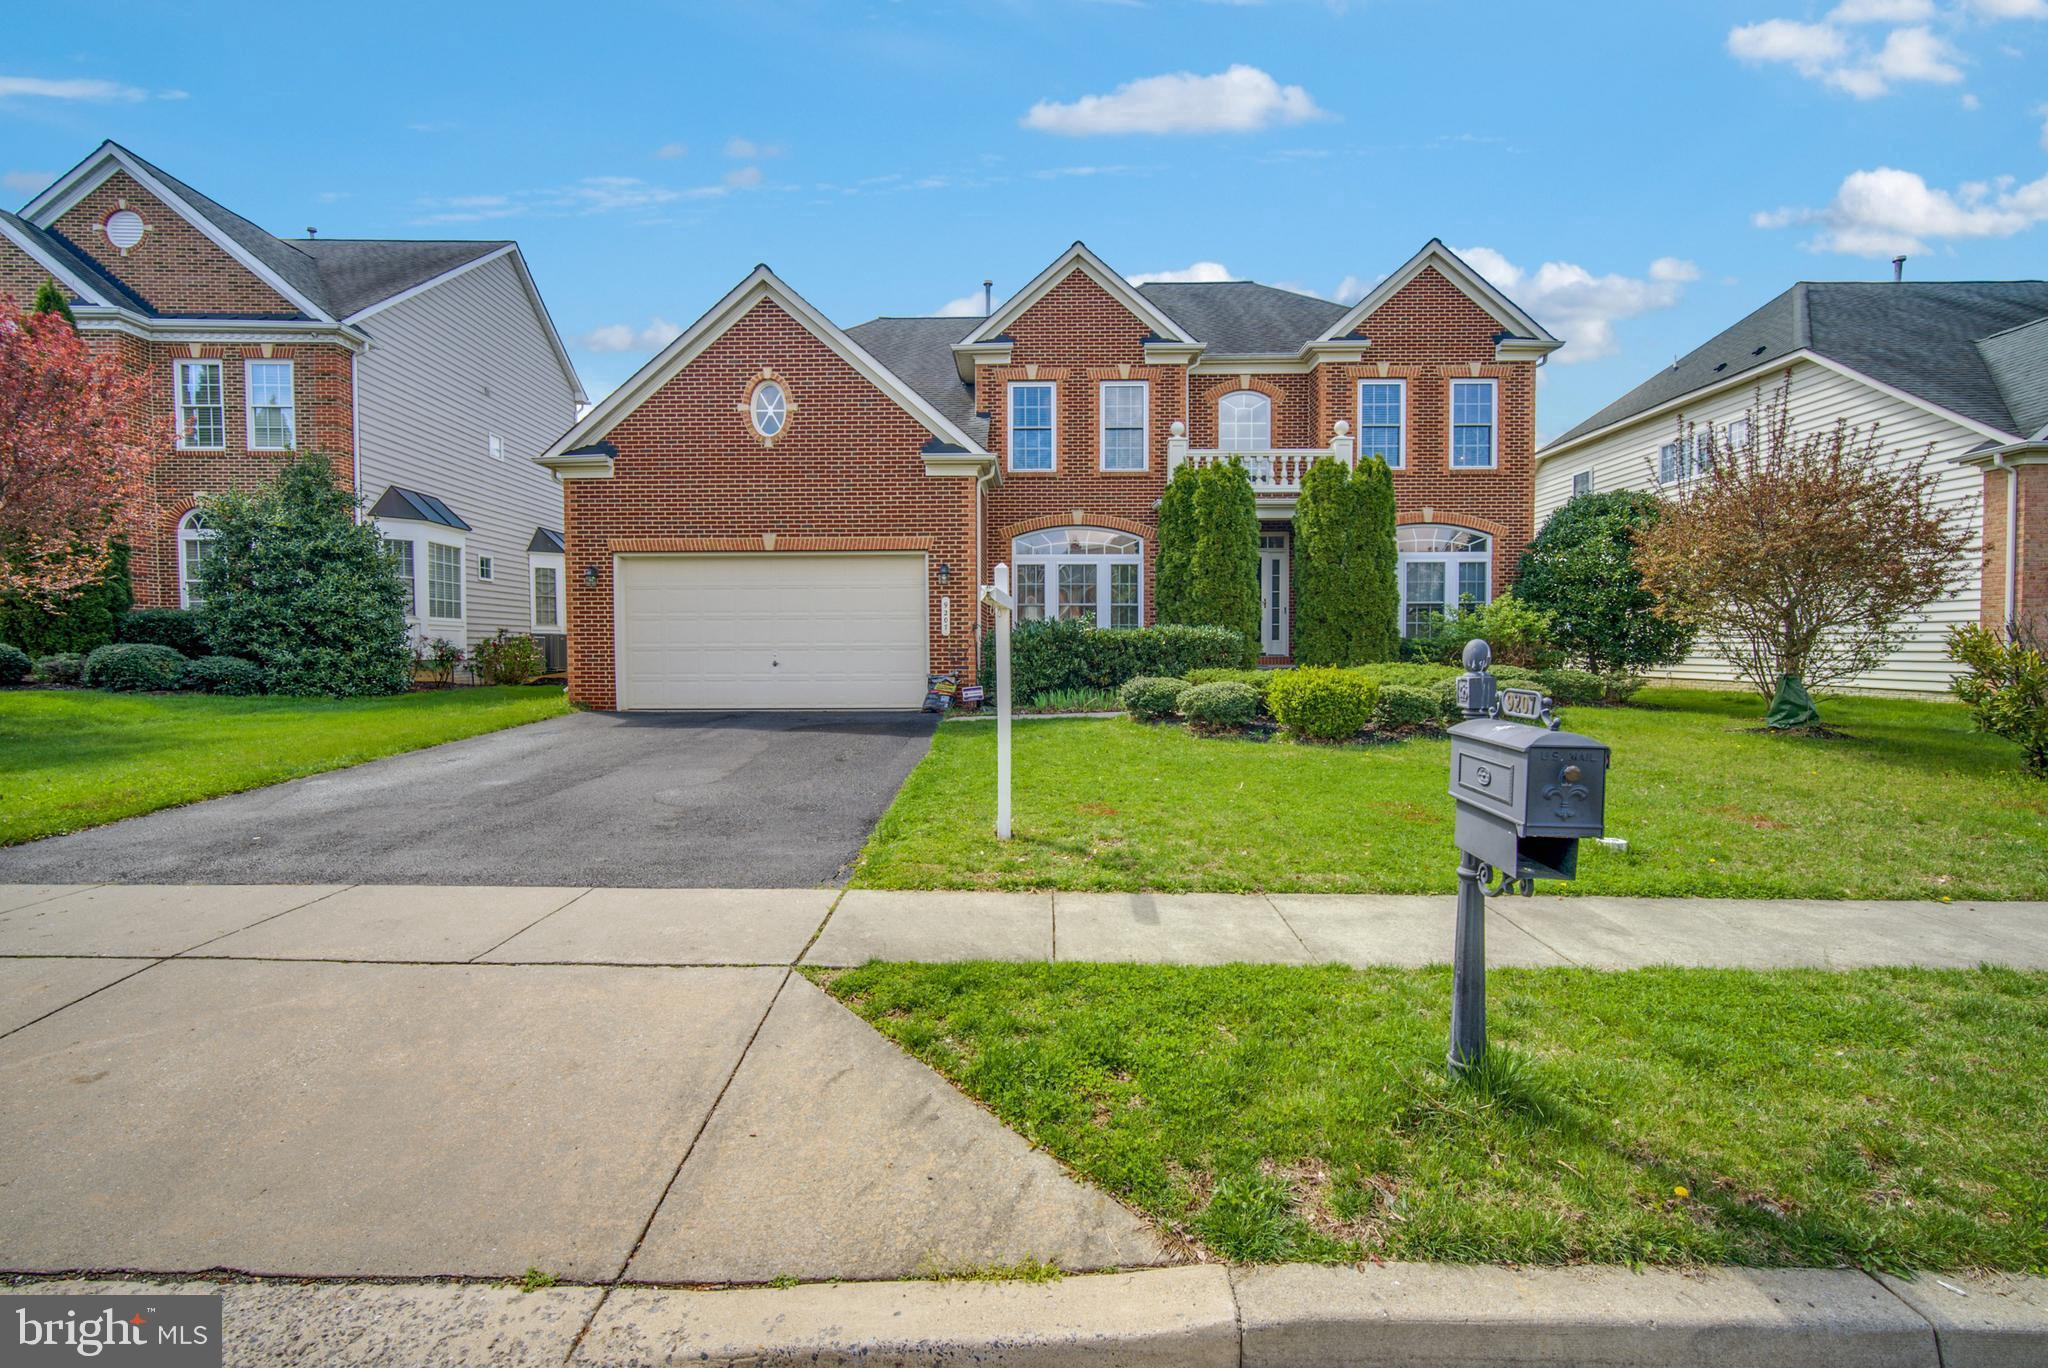 Welcome to this charming, well cared home in the sought after community of Villages of Urbana. Feat